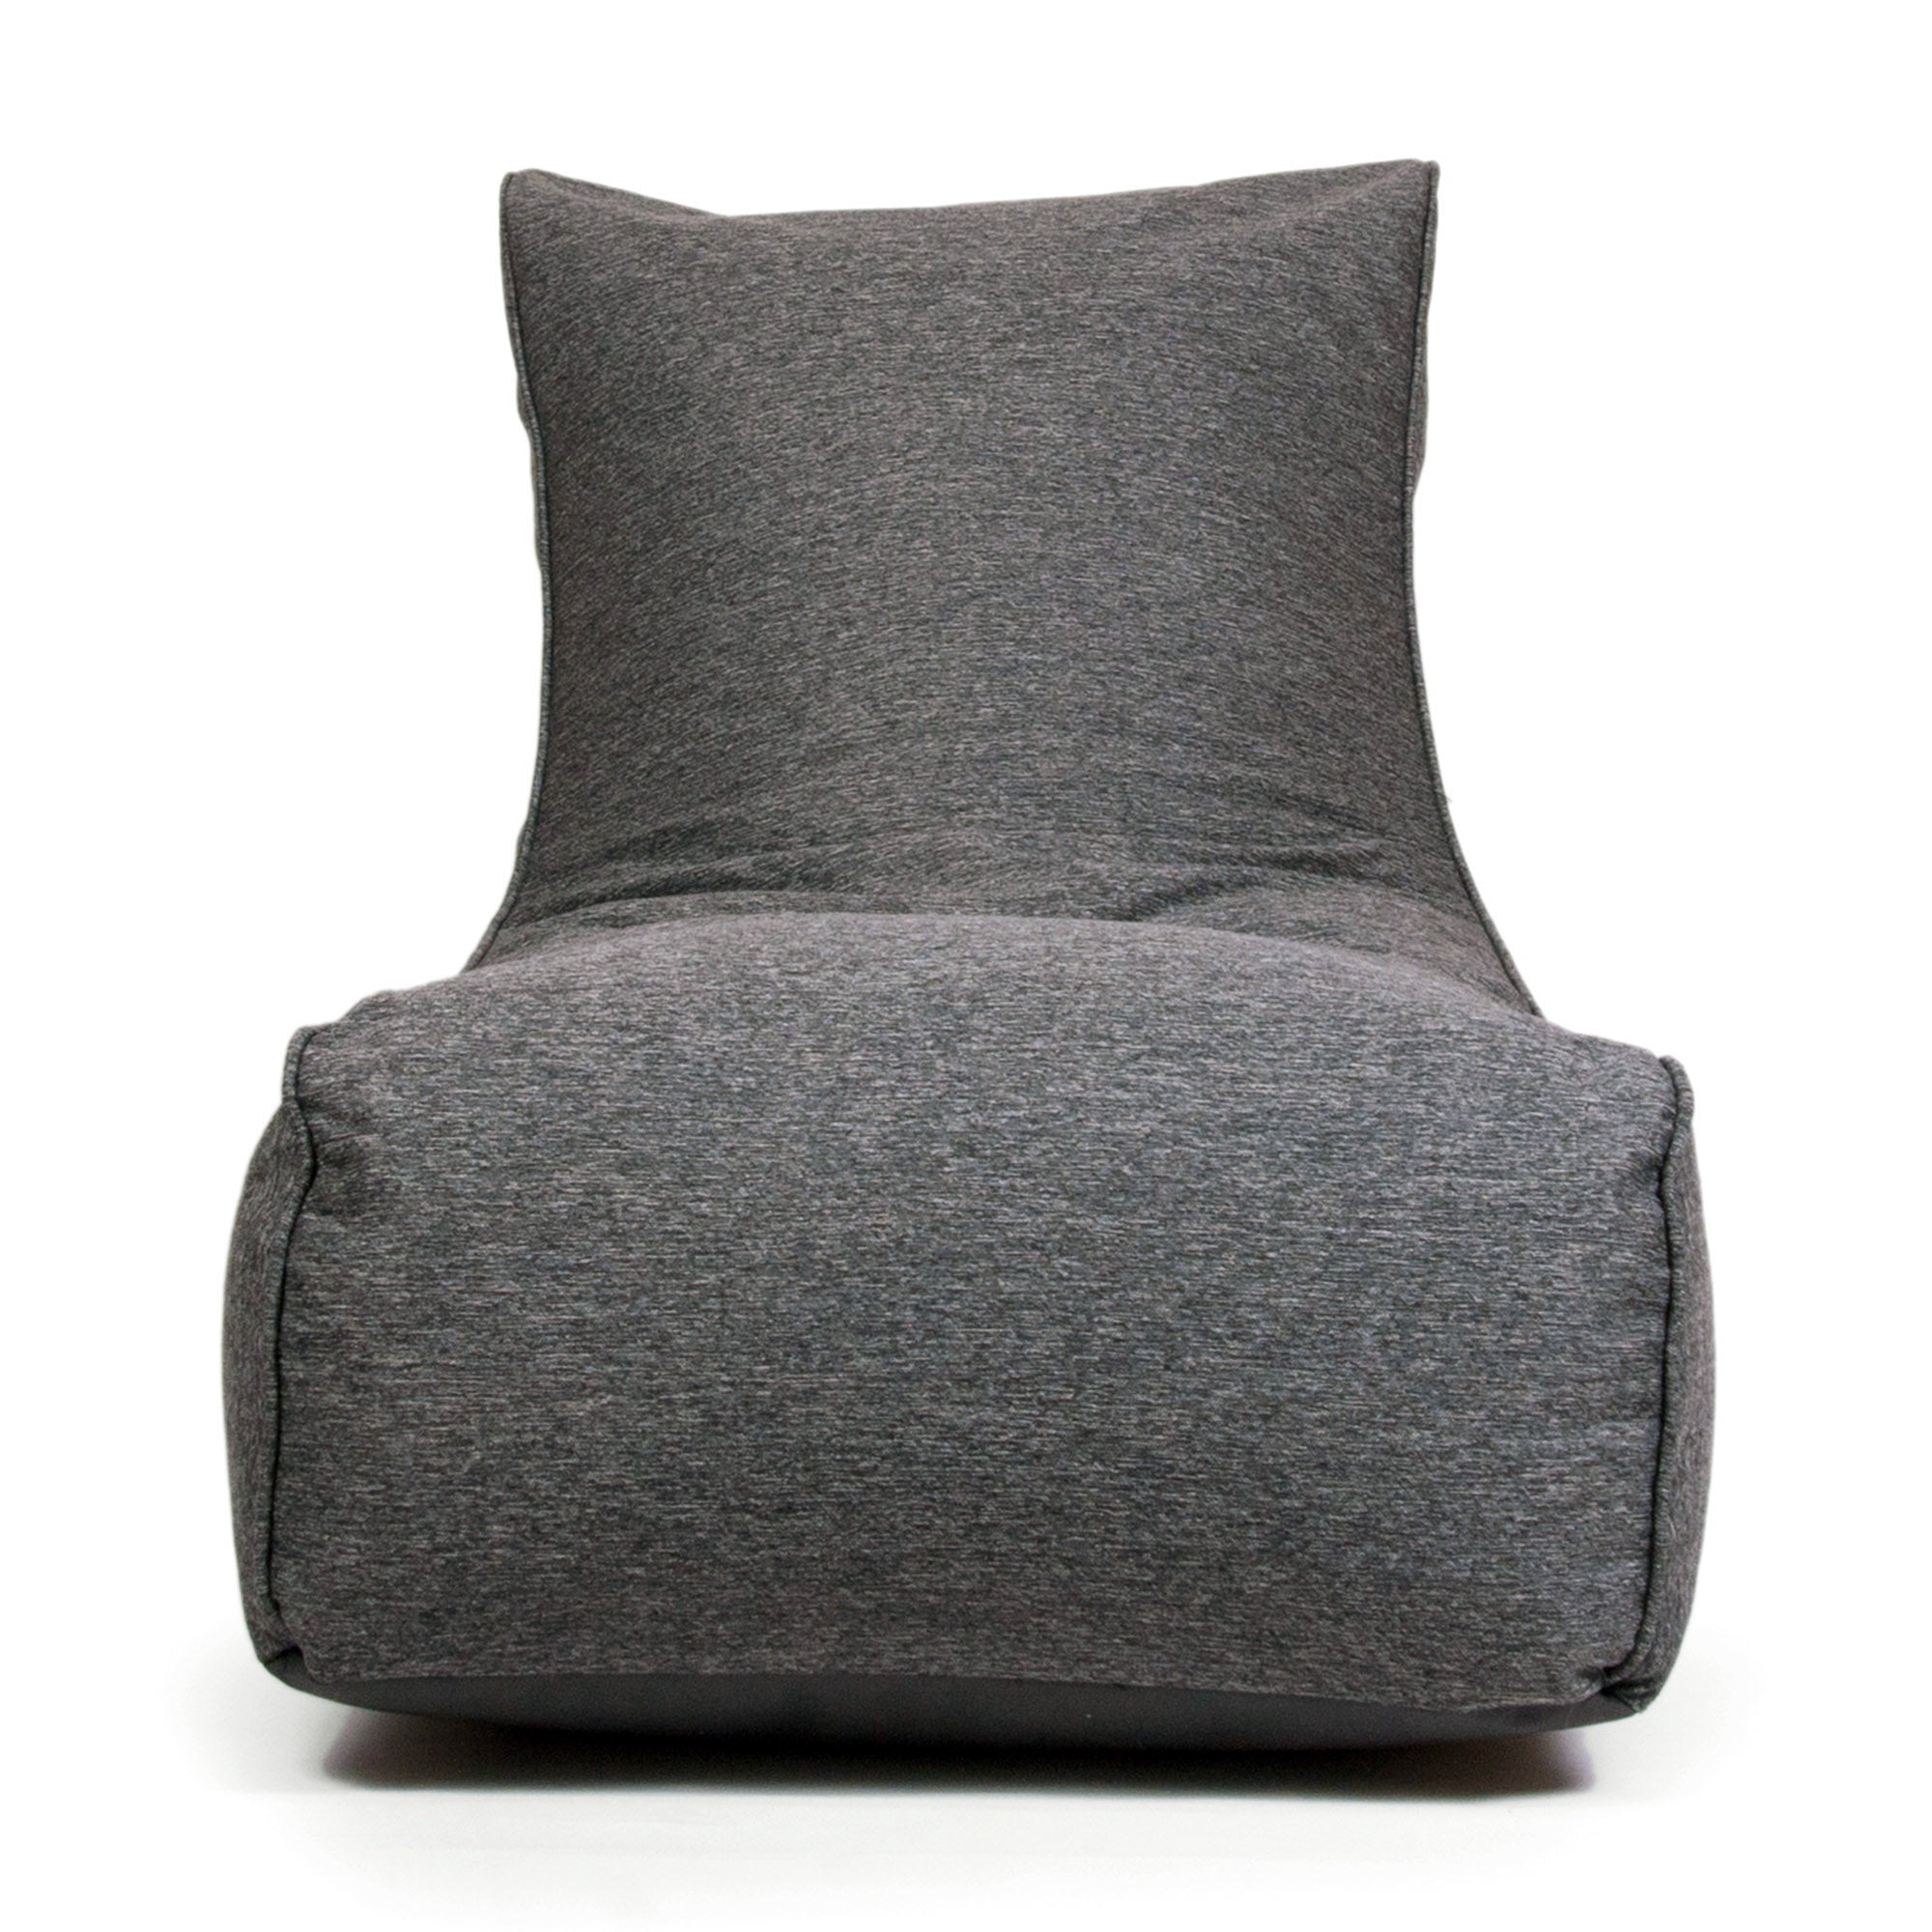 Black Cara Amazon Lounger